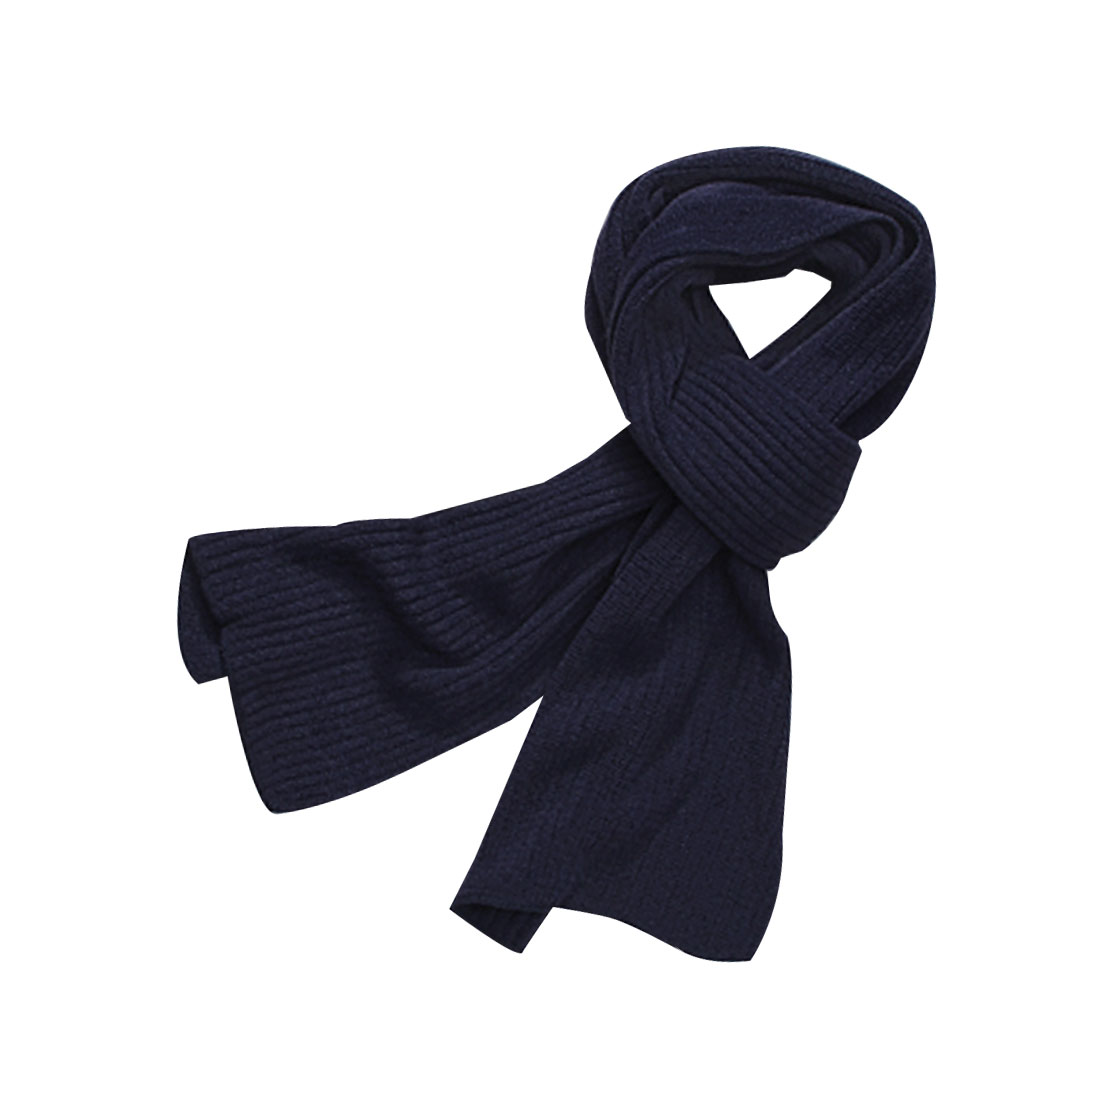 Men Dark Blue Rectangular Shaped Simple Style Winter Cozy Neckwear Wrap